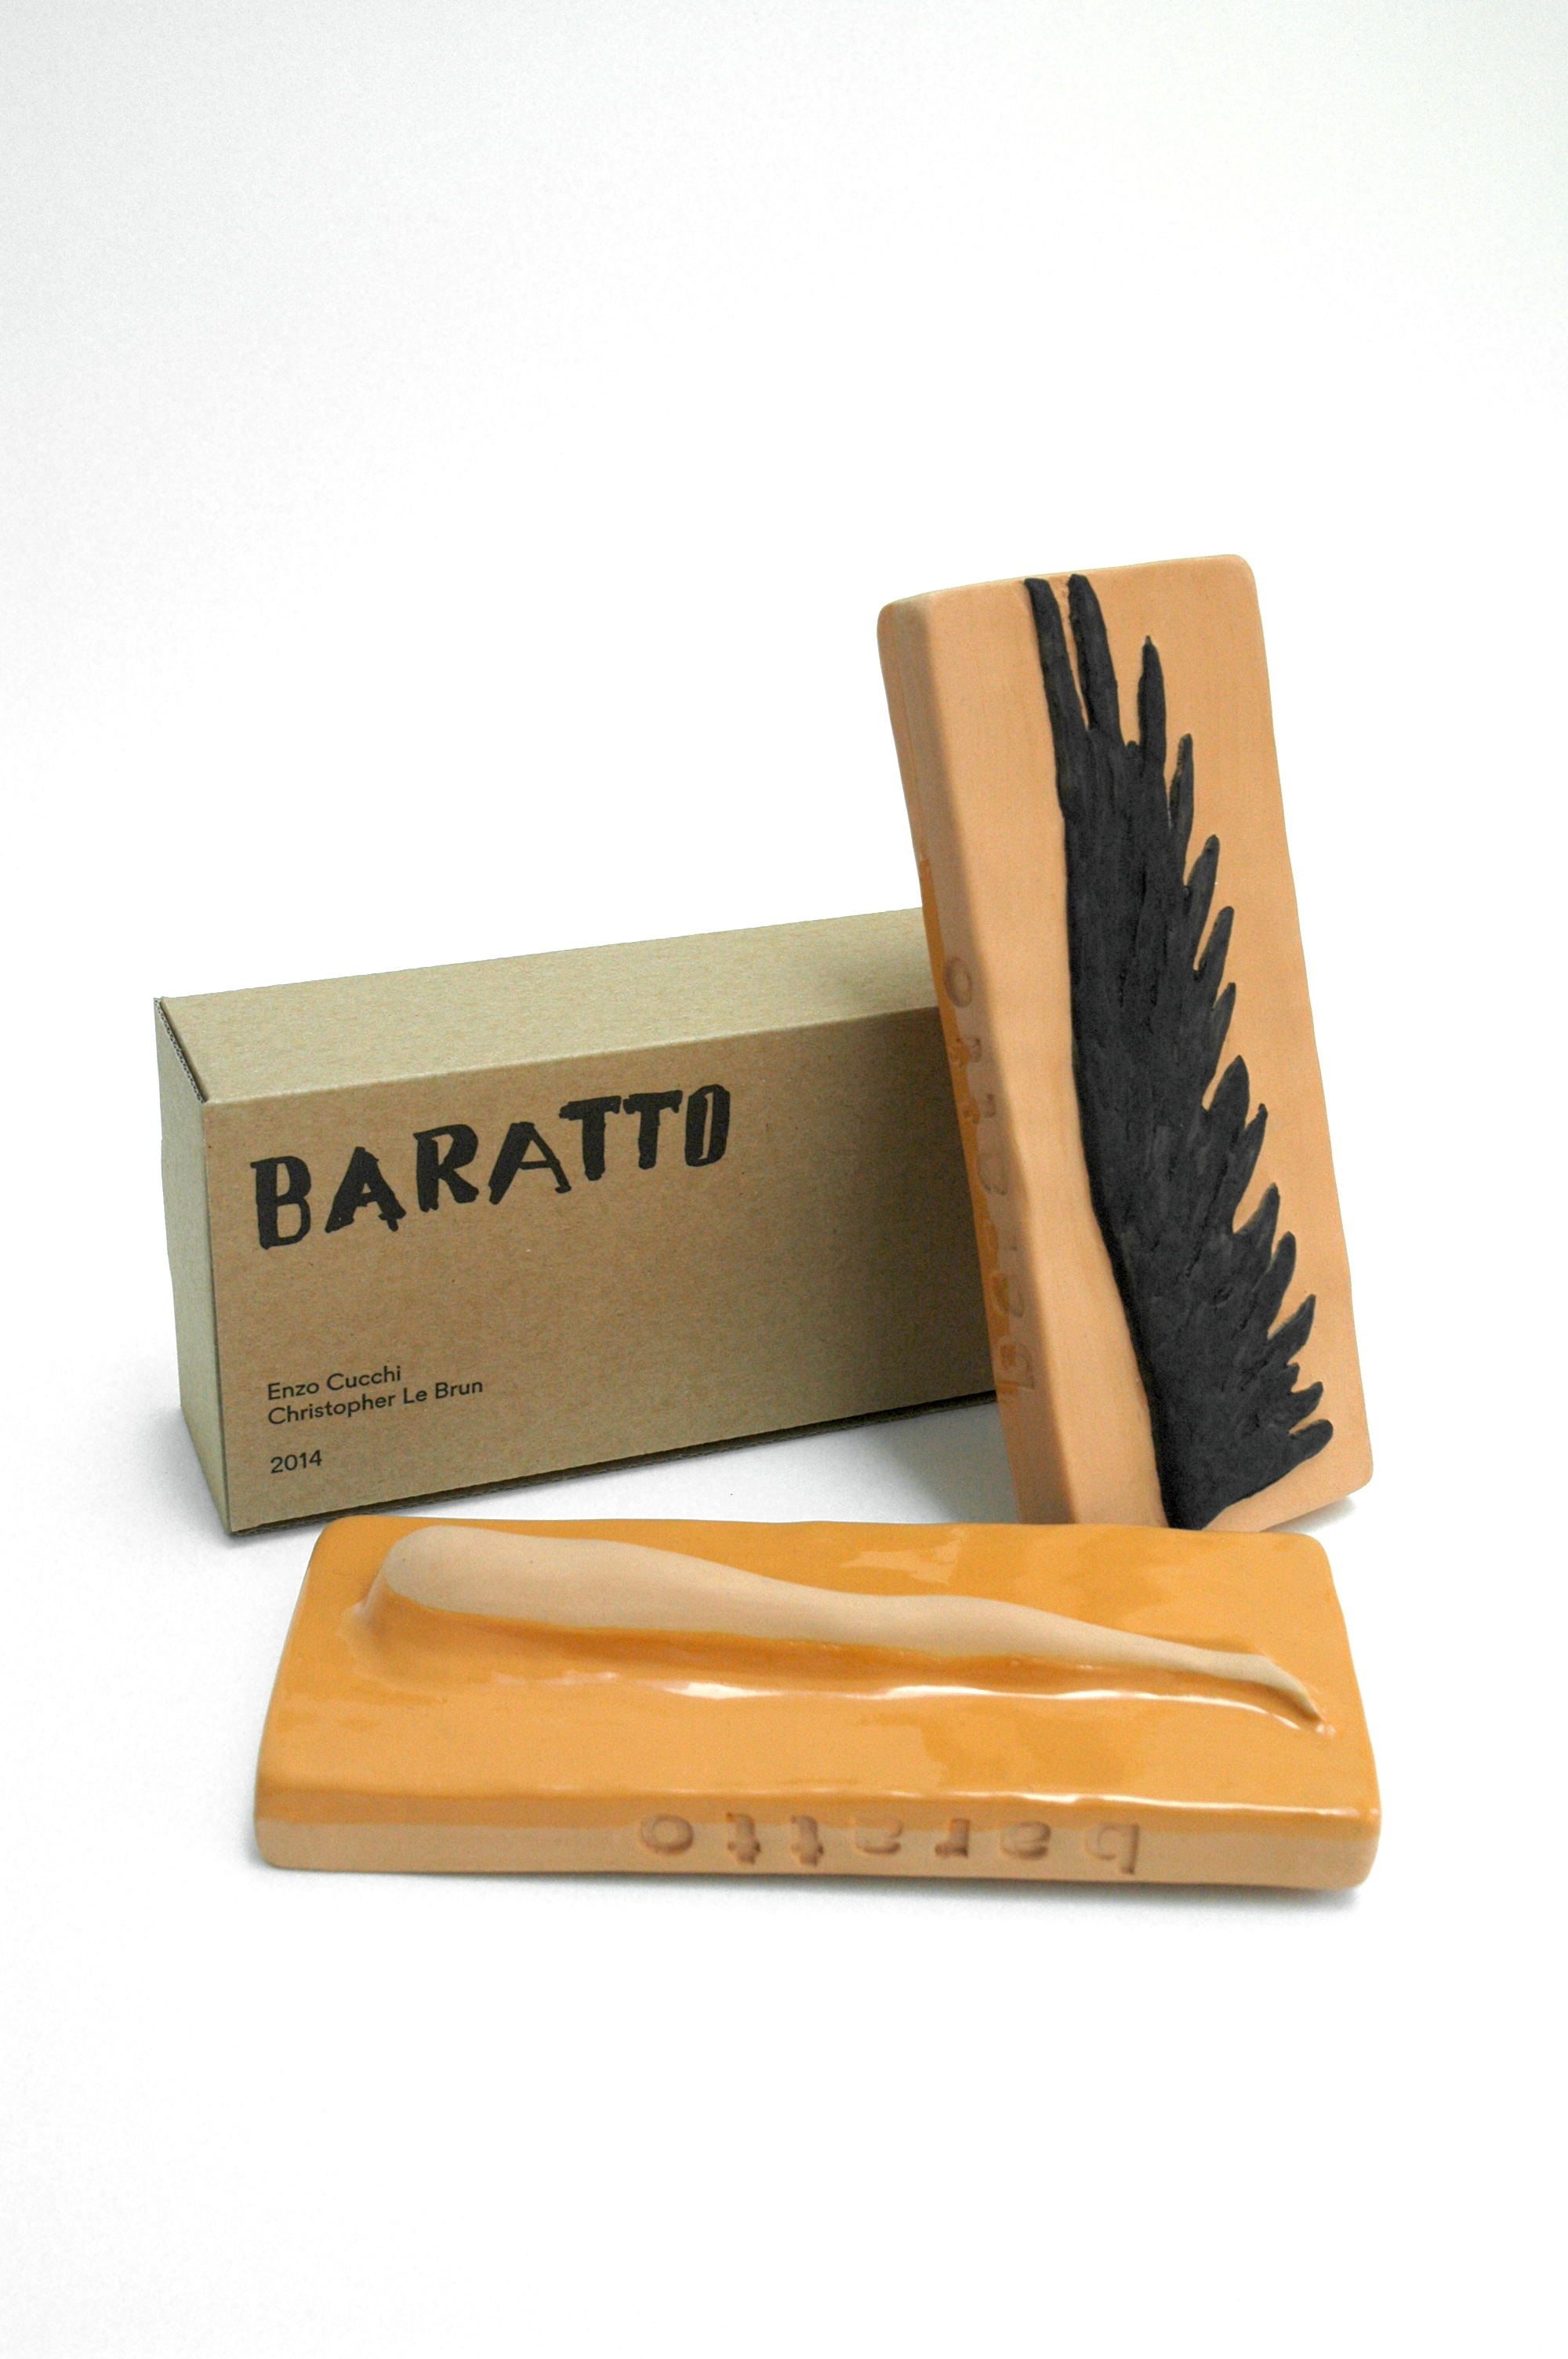 Barrato (ceramic).JPG